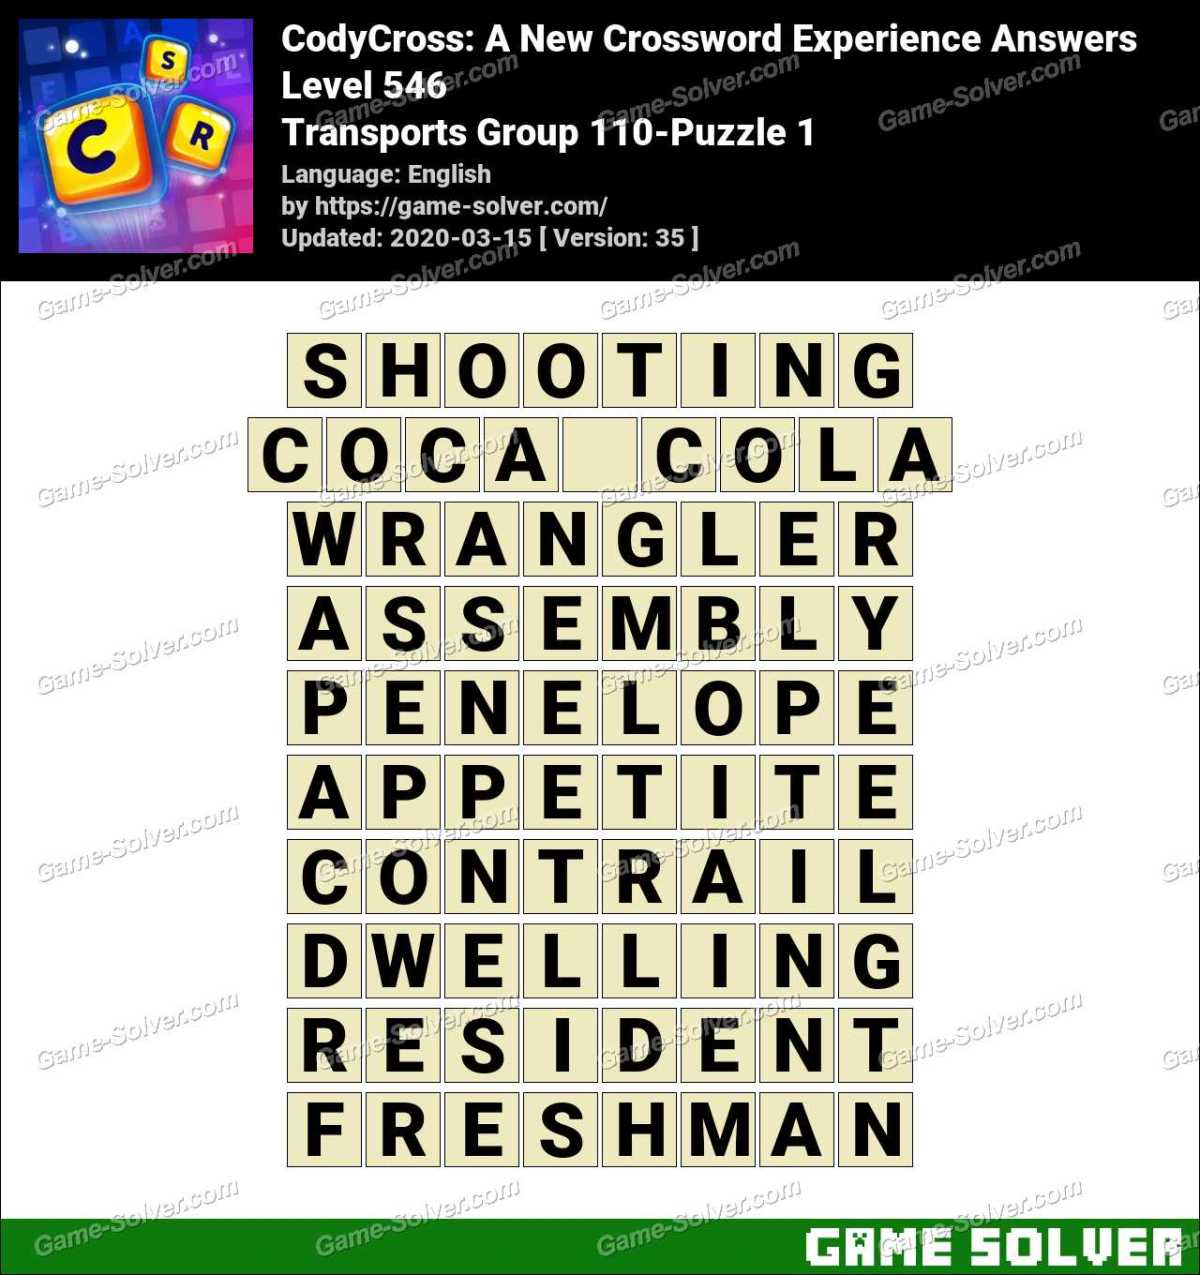 CodyCross Transports Group 110-Puzzle 1 Answers